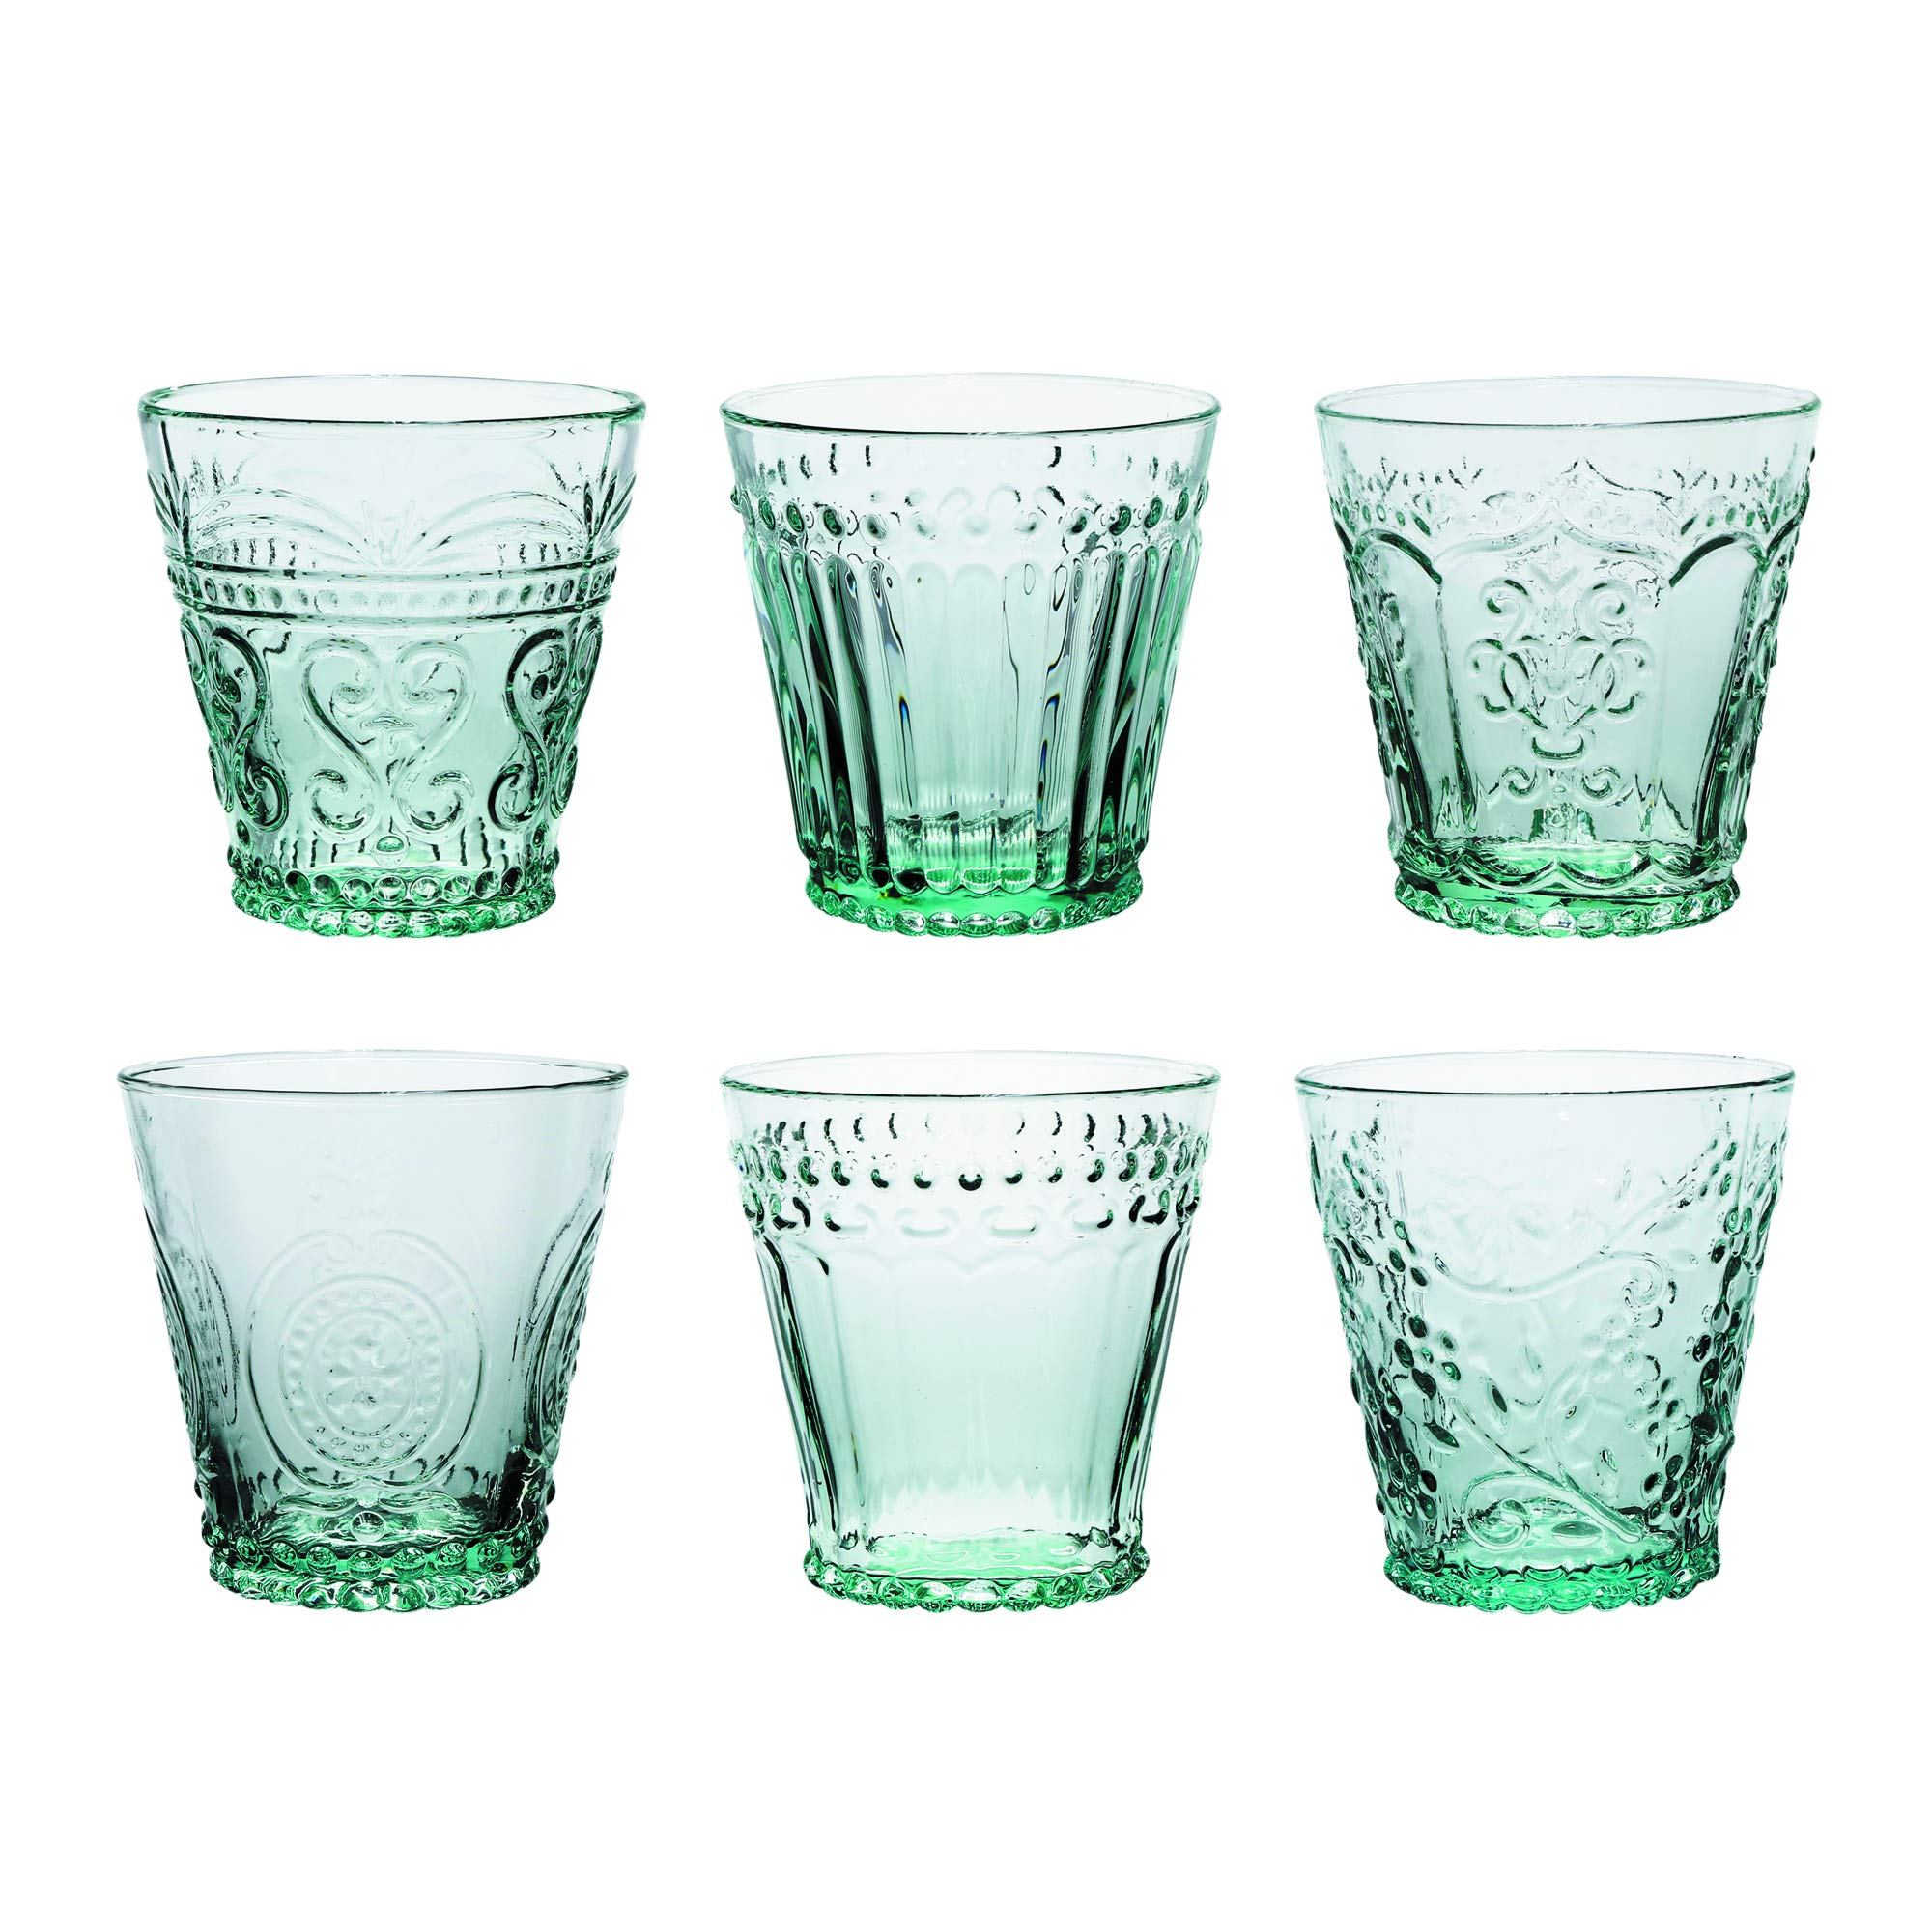 Kom Amsterdam AQ6MX Aqua Waterglass, Soda Lime Glass, 240 milliliters, Green